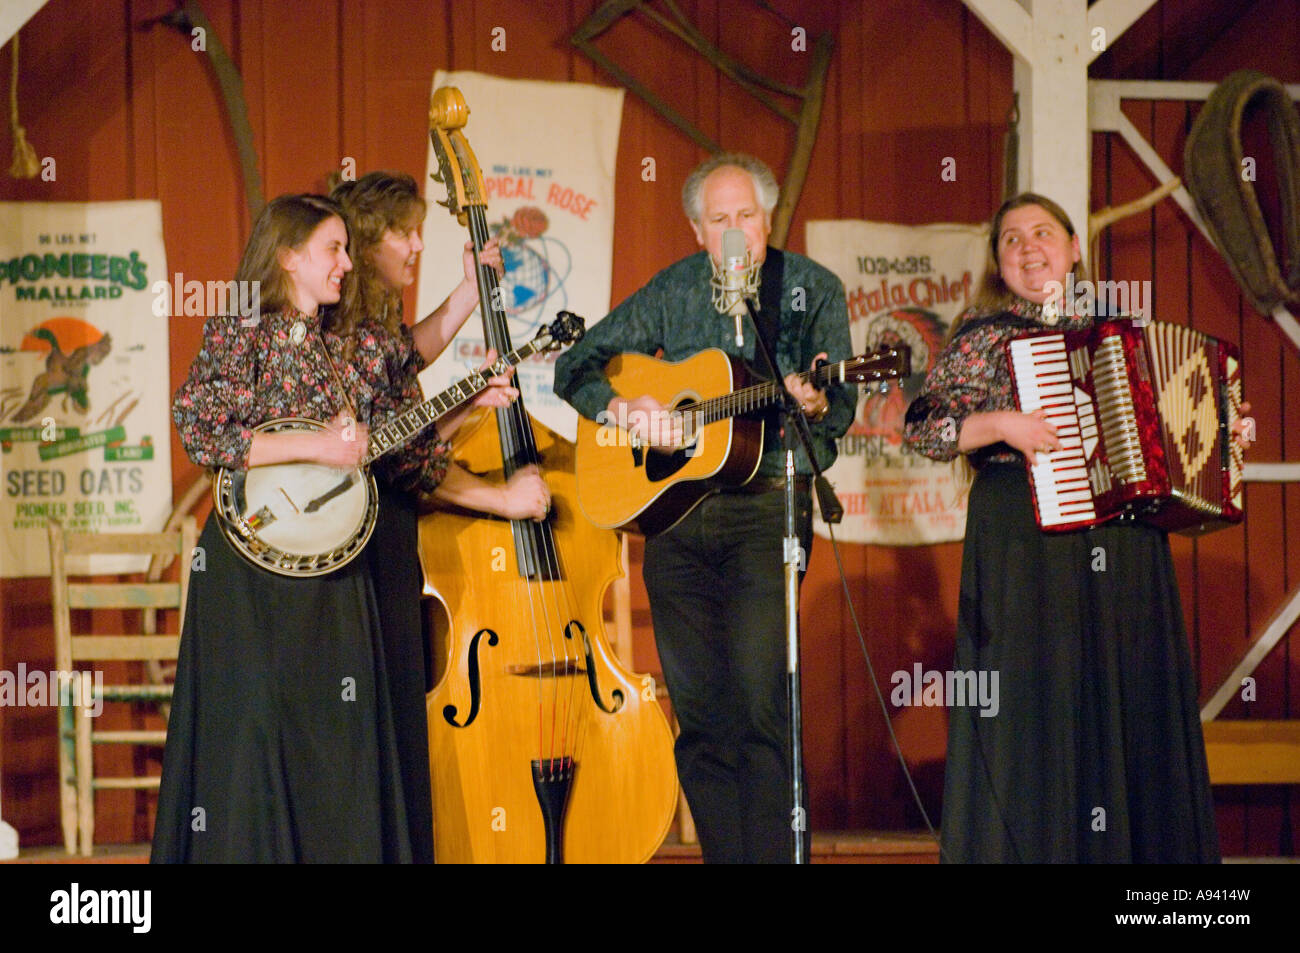 Folk musicians performing at a concert at the Ozark Folk Center State Park Mountain View AR - Stock Image